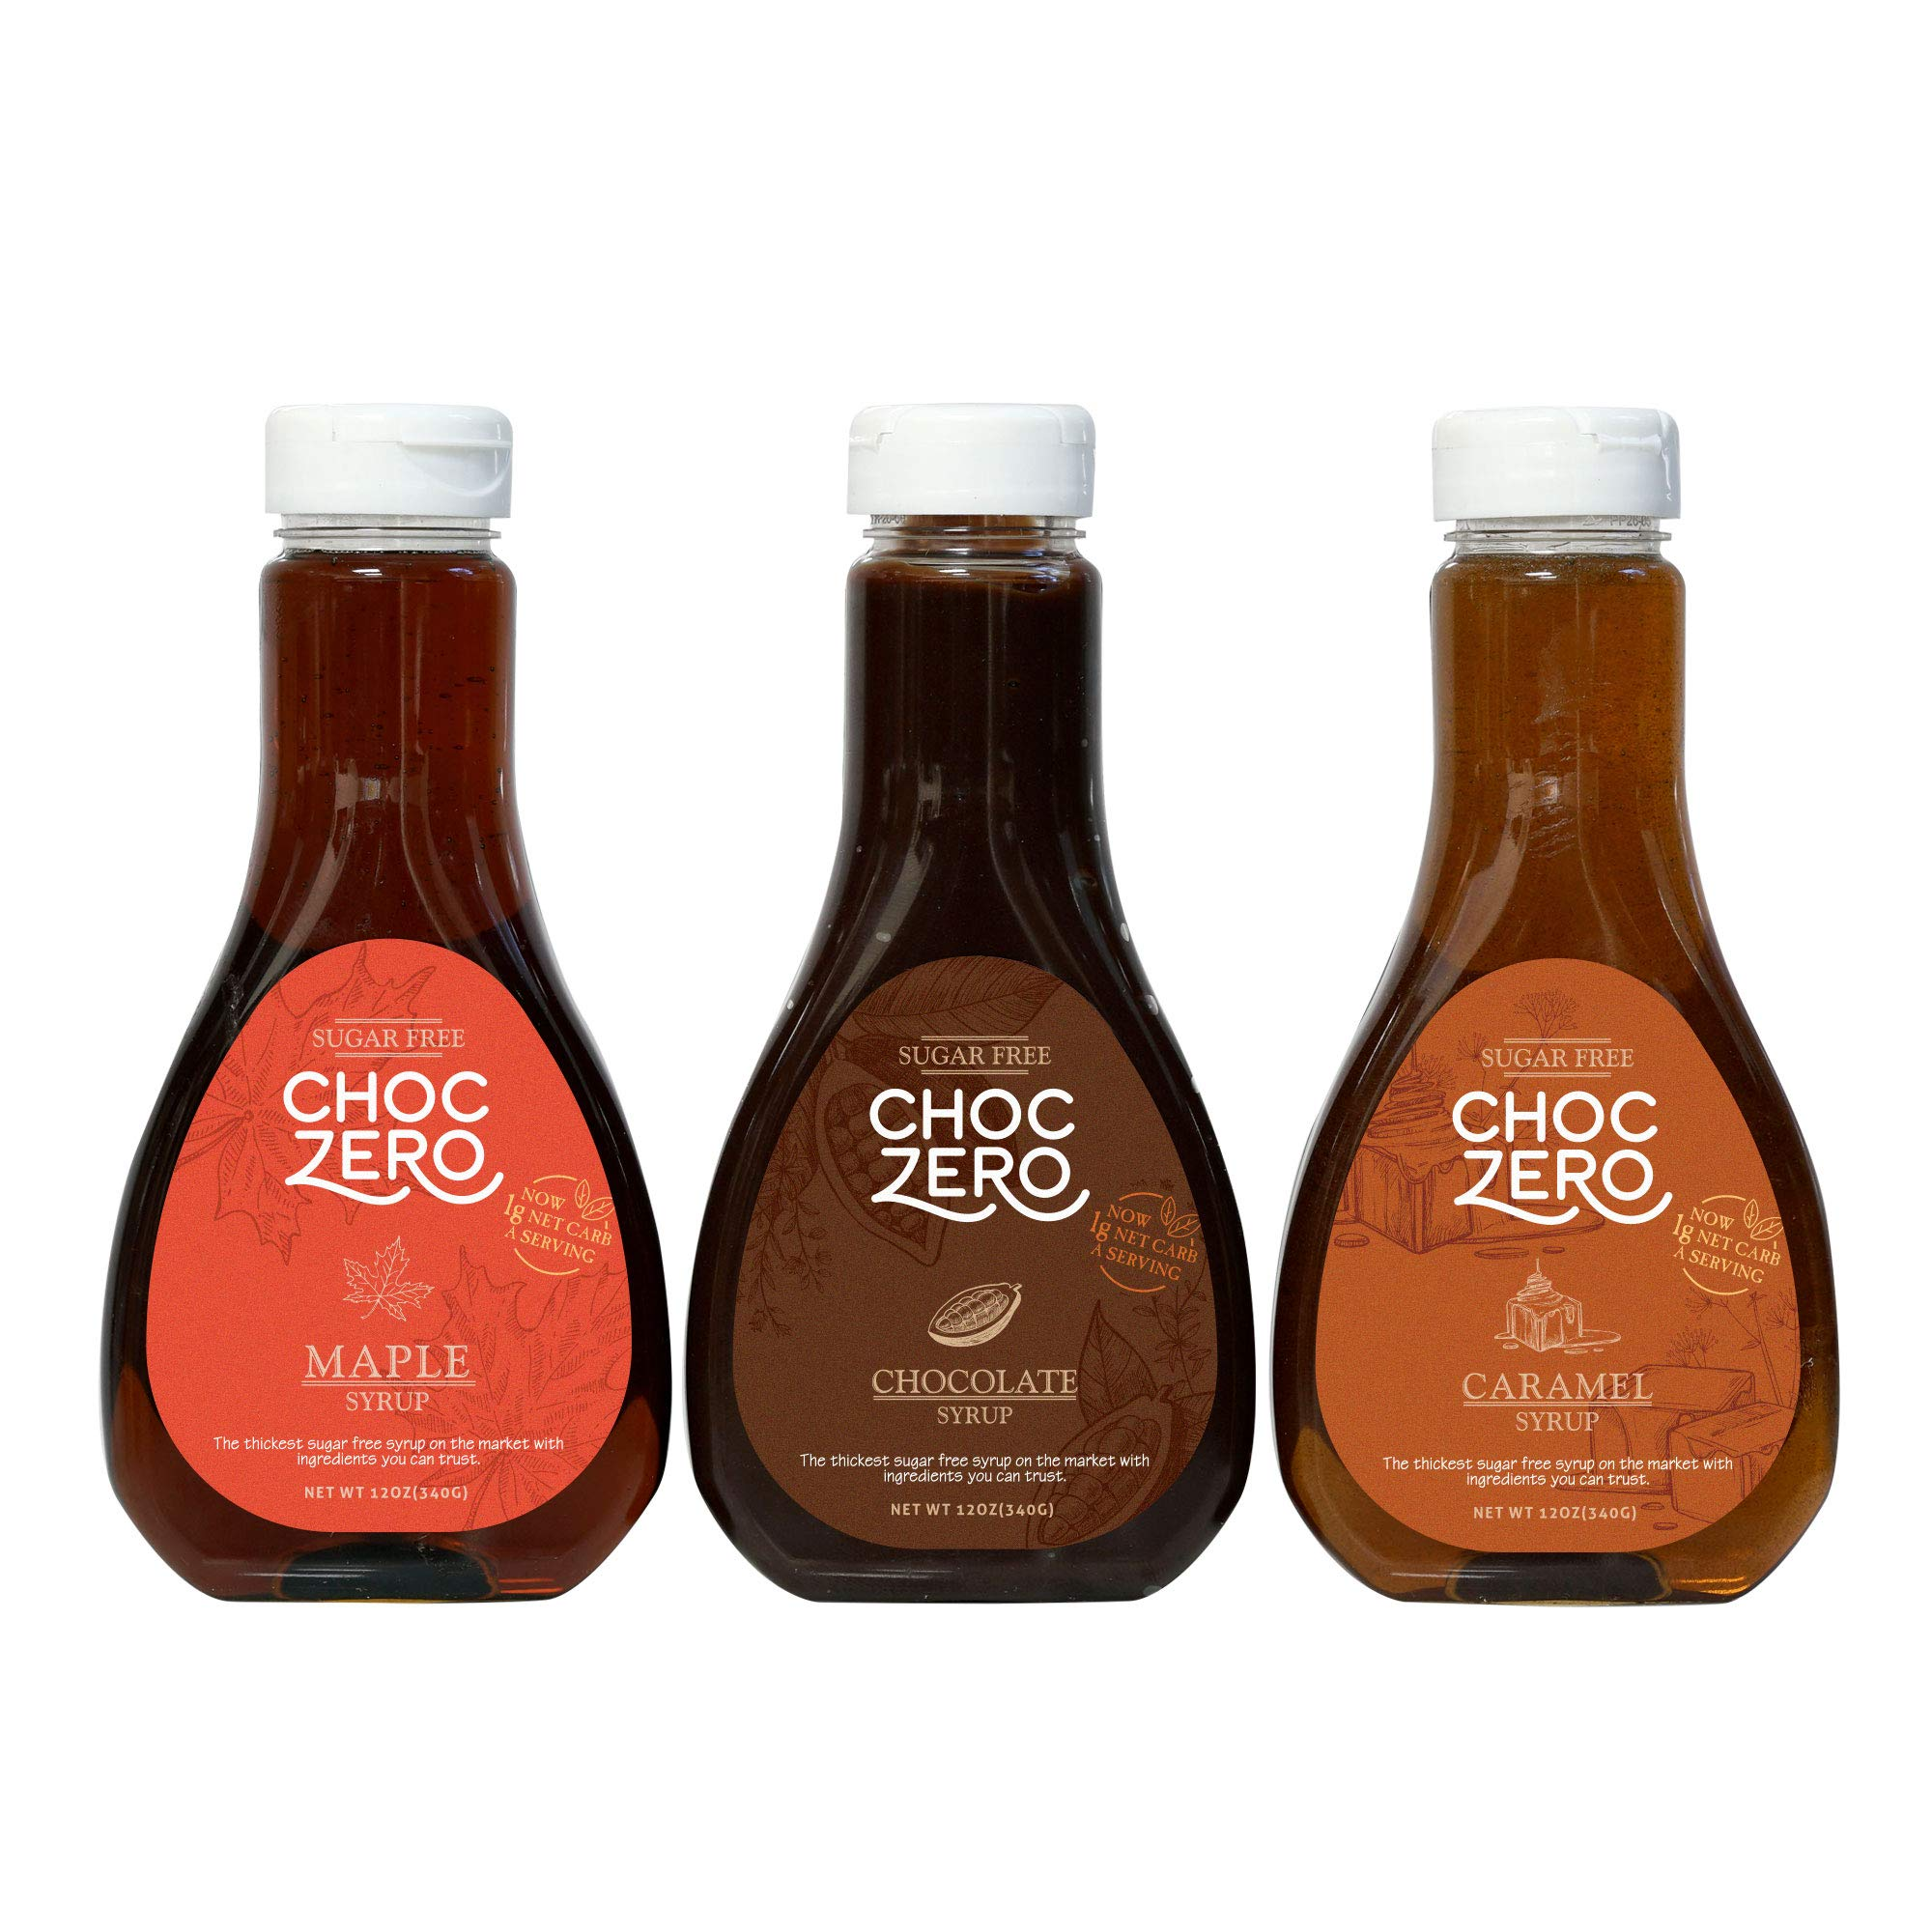 ChocZero Syrup Variety Pack. Sugar-free, Low Carb, No Preservatives. Thick and Rich. No Sugar Alcohol, Gluten-Free. 3 Bottles (Chocolate, Caramel, Maple) by ChocZero (Image #1)